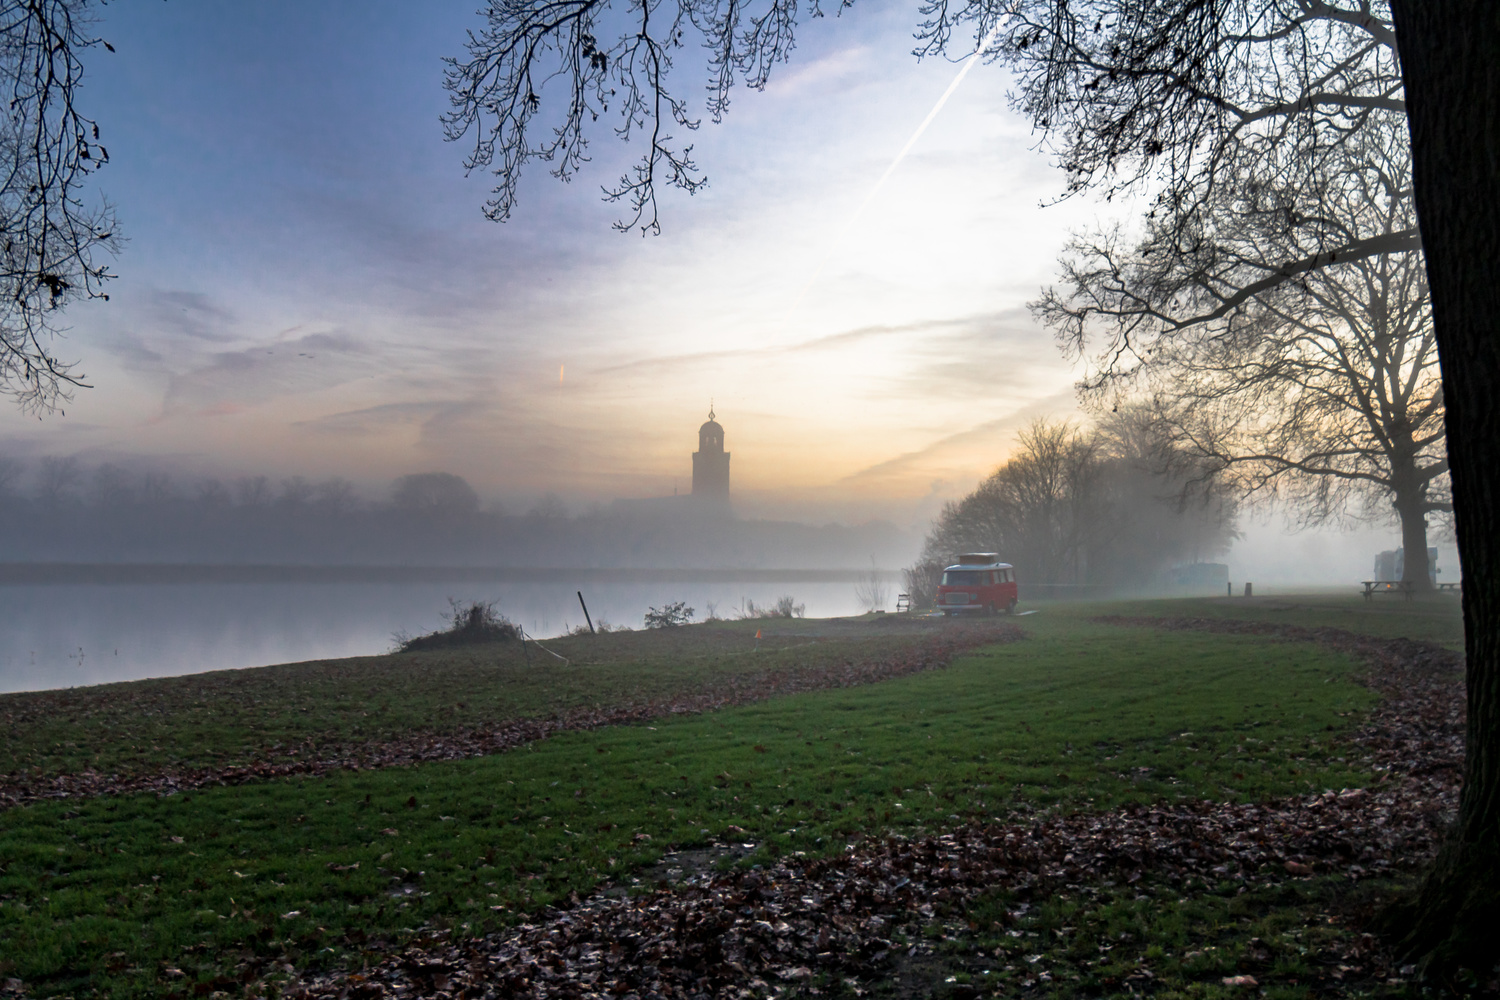 The Deventer church tower in the mist by Jaimy Leemburg